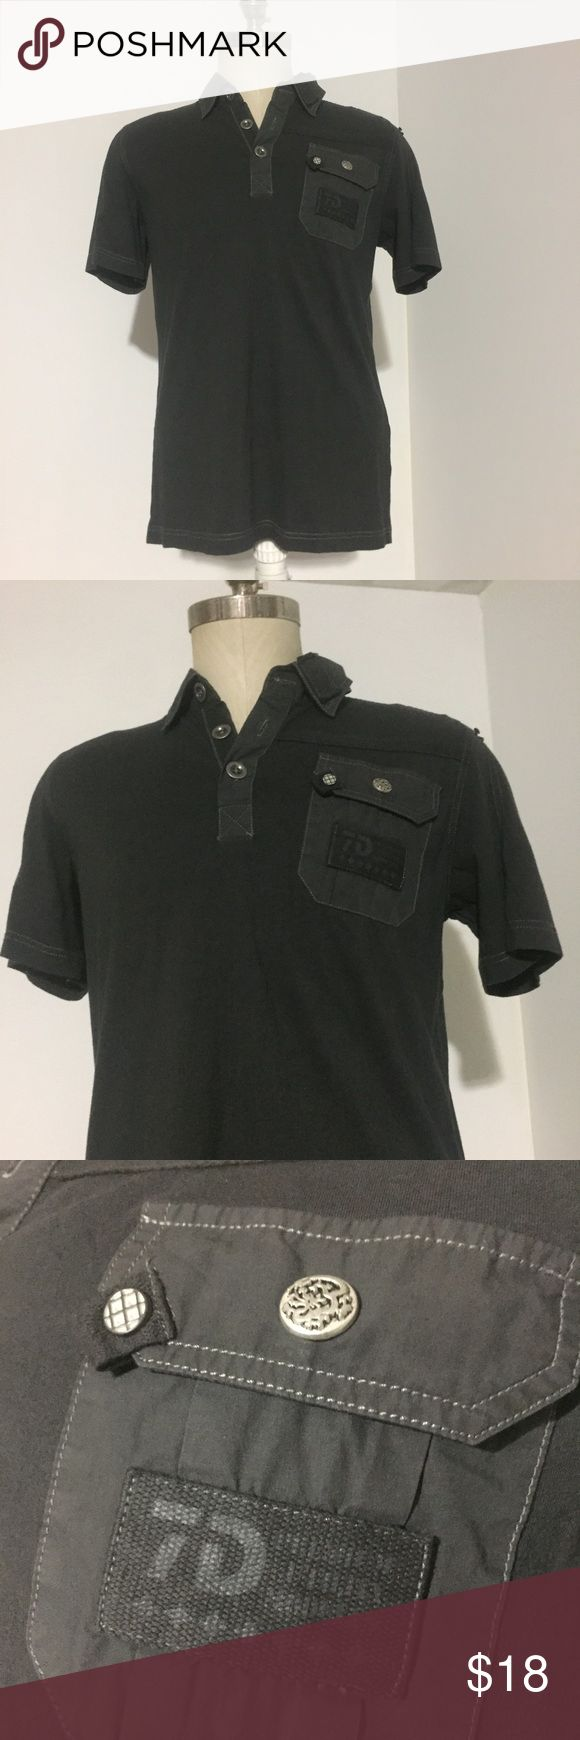 7 Diamonds Black Shirt Great shirt. Almost Cargo style. 7 diamonds brand in a size M. Made to look worn on the shoulders (see pic). 7 Diamonds Shirts Polos